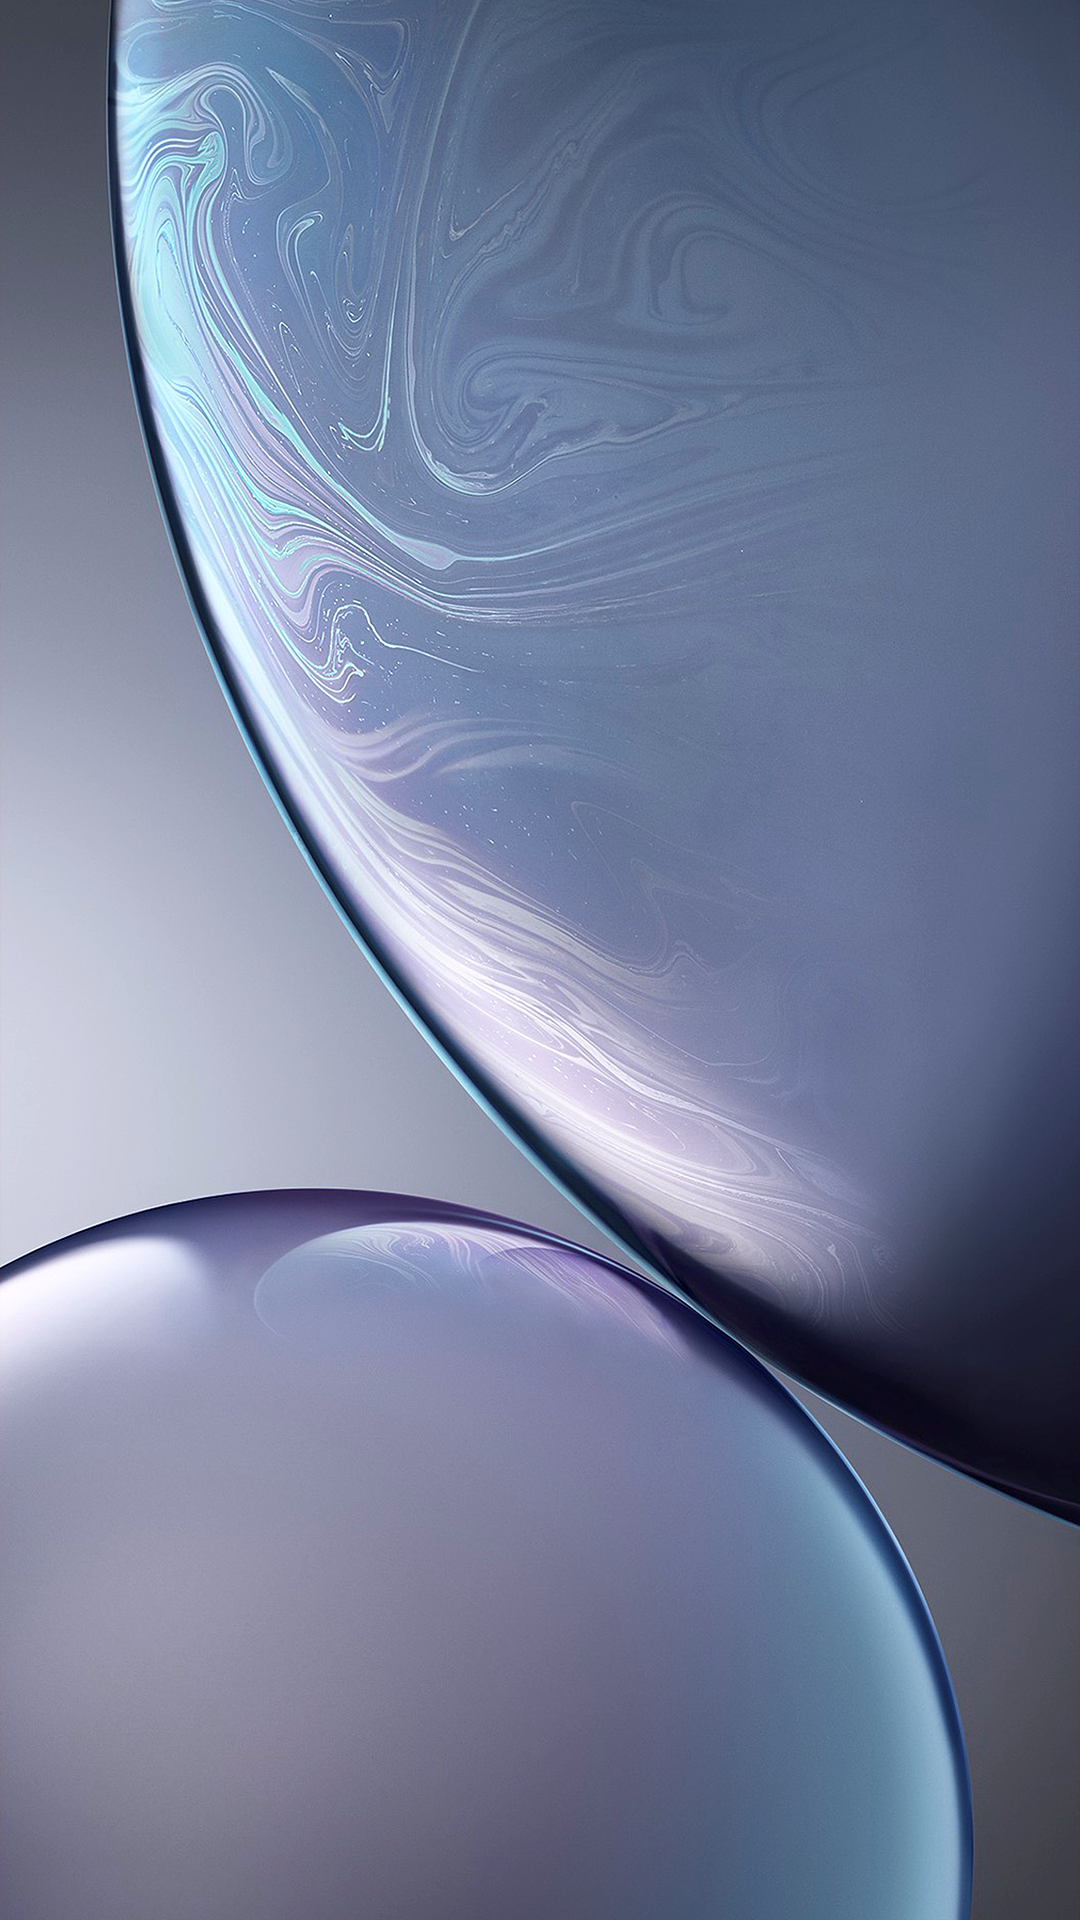 Iphone Xs Max Wallpaper Download In 4K Gallery in 2020